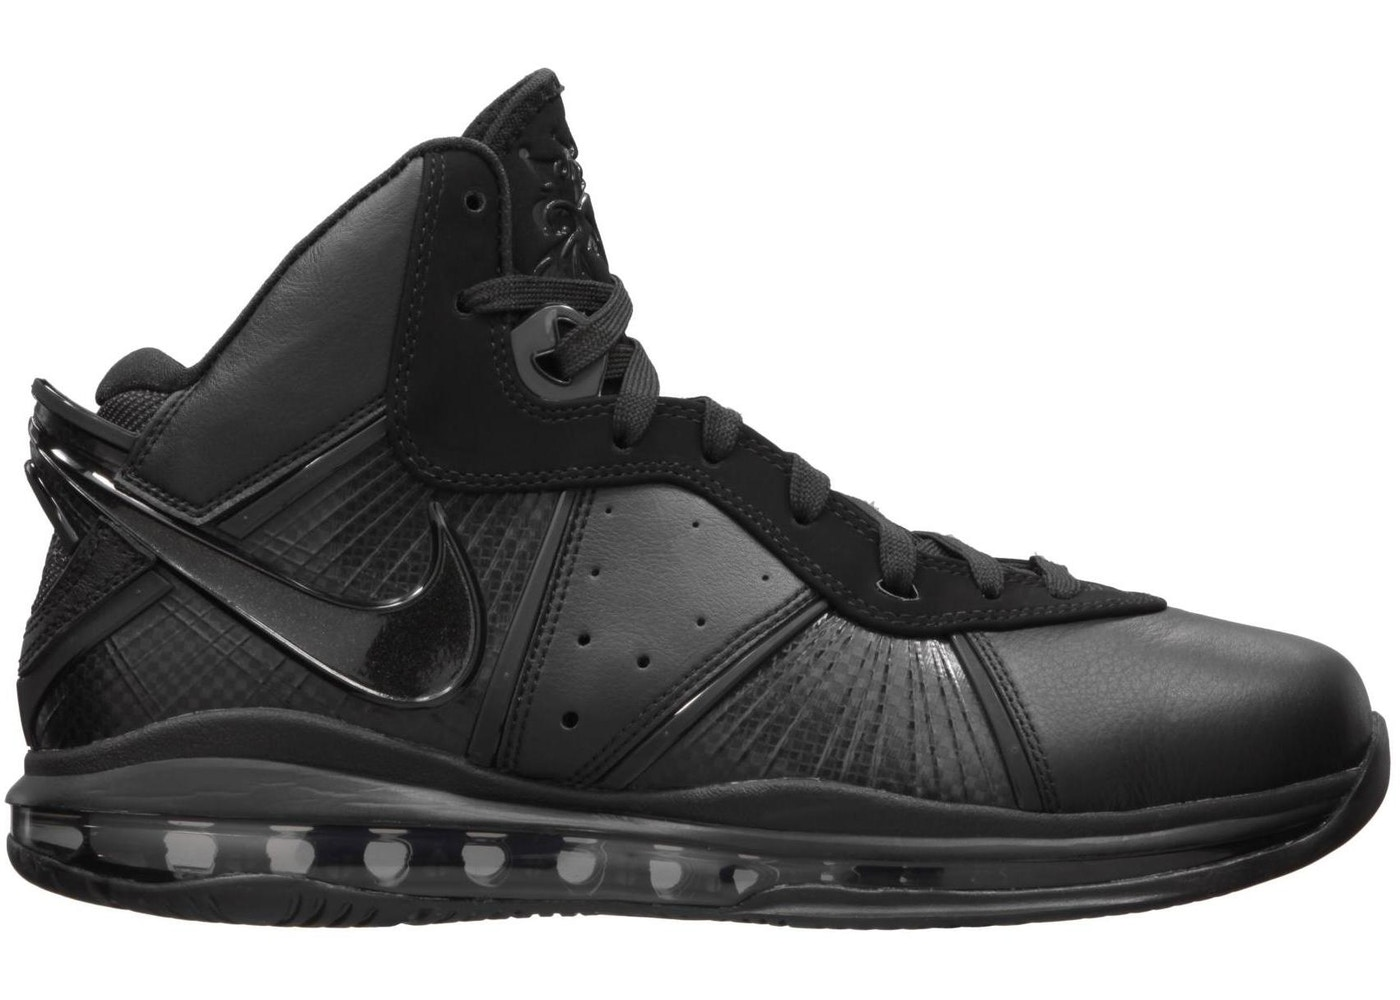 best website 6dbb6 94c22 Nike LeBron 8 Shoes - Price Premium